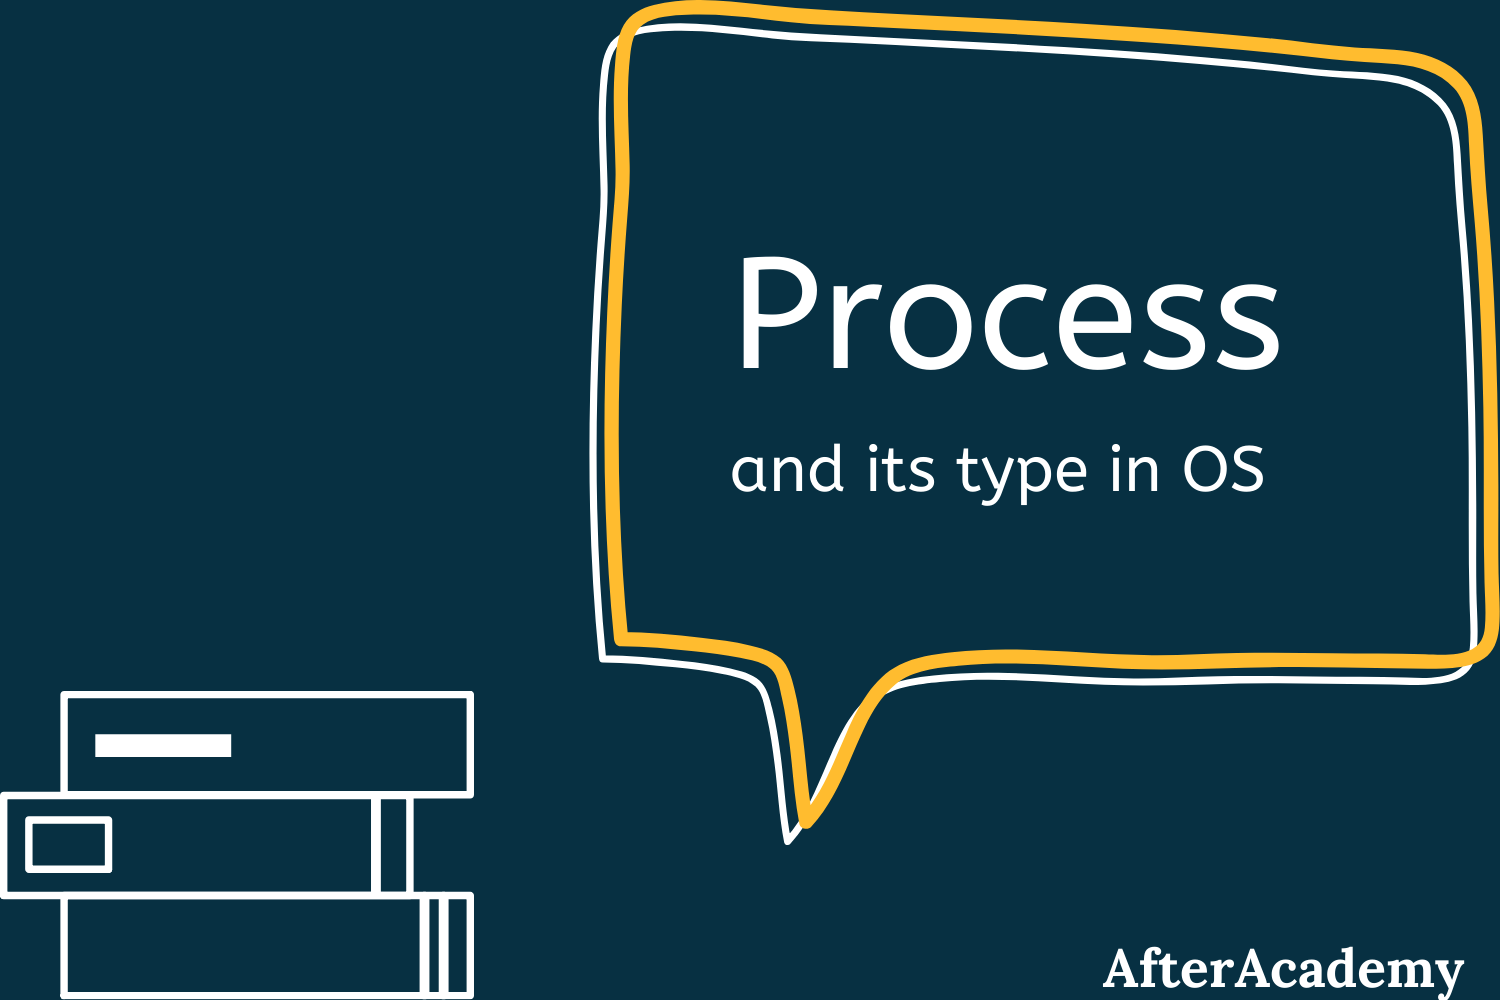 What is a Process in Operating System and what are the different states of a Process?